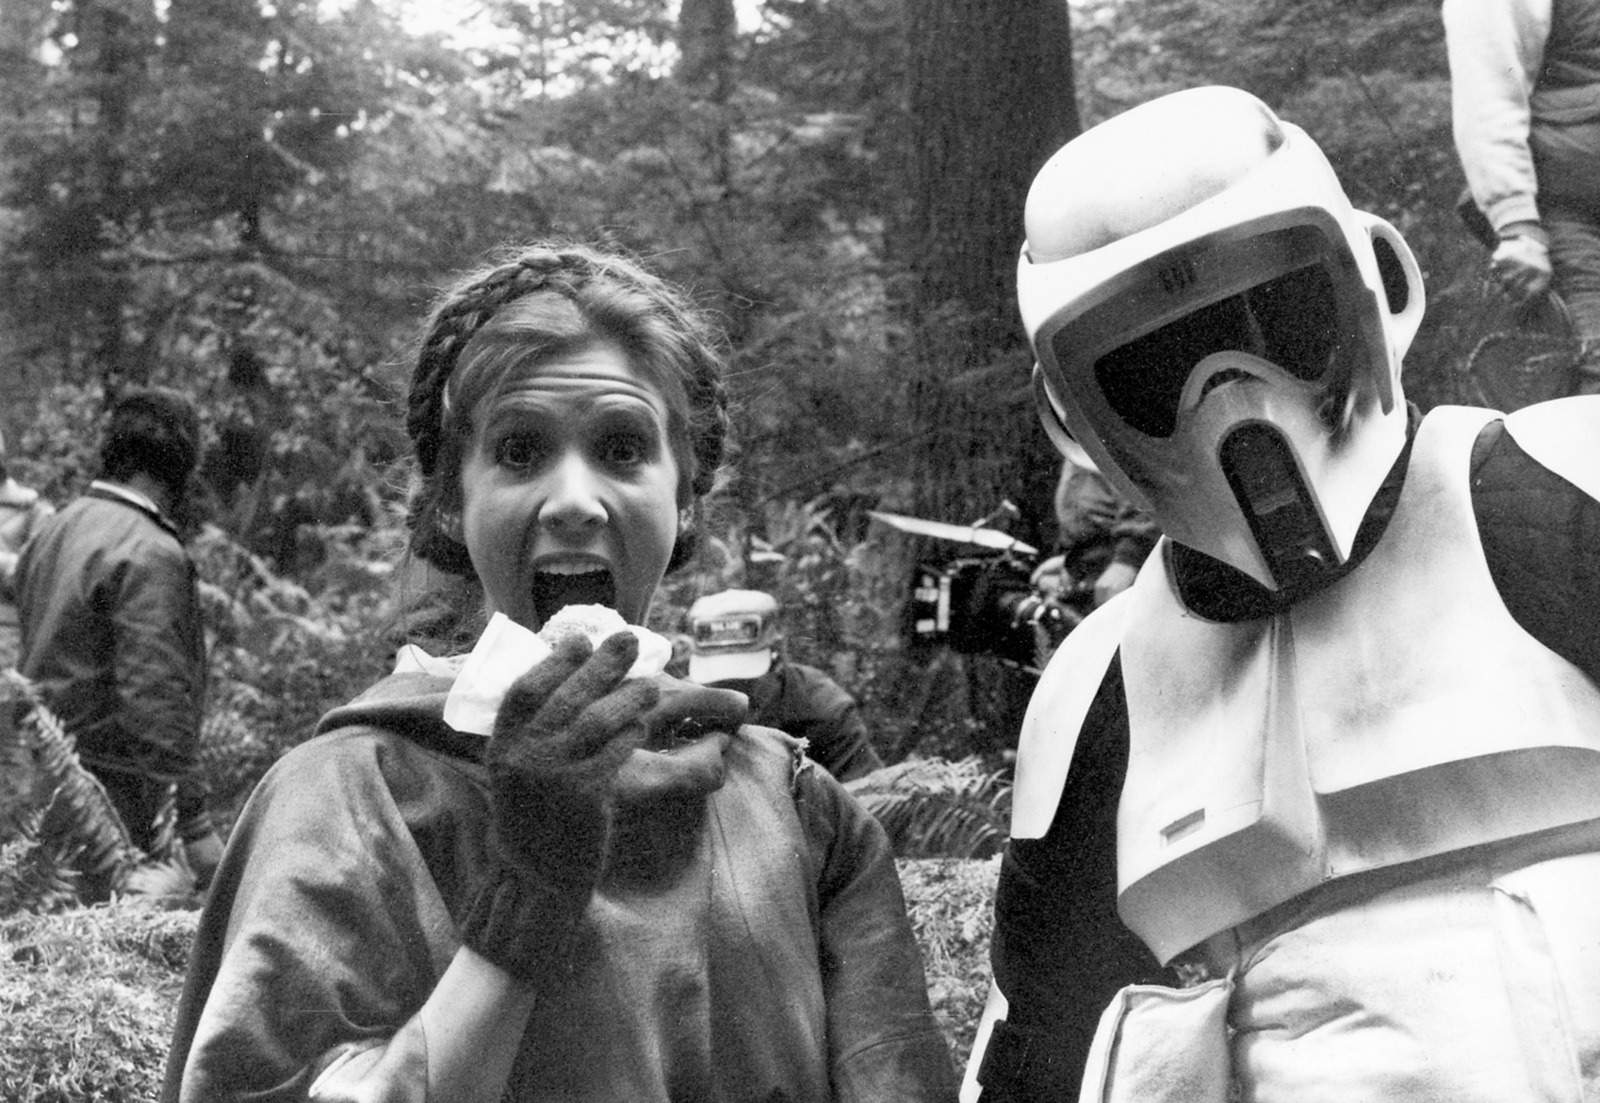 """CANDID SHOTS FROM """"RETURN OF THE JEDI"""" IN THE REDWOOD FOREST"""